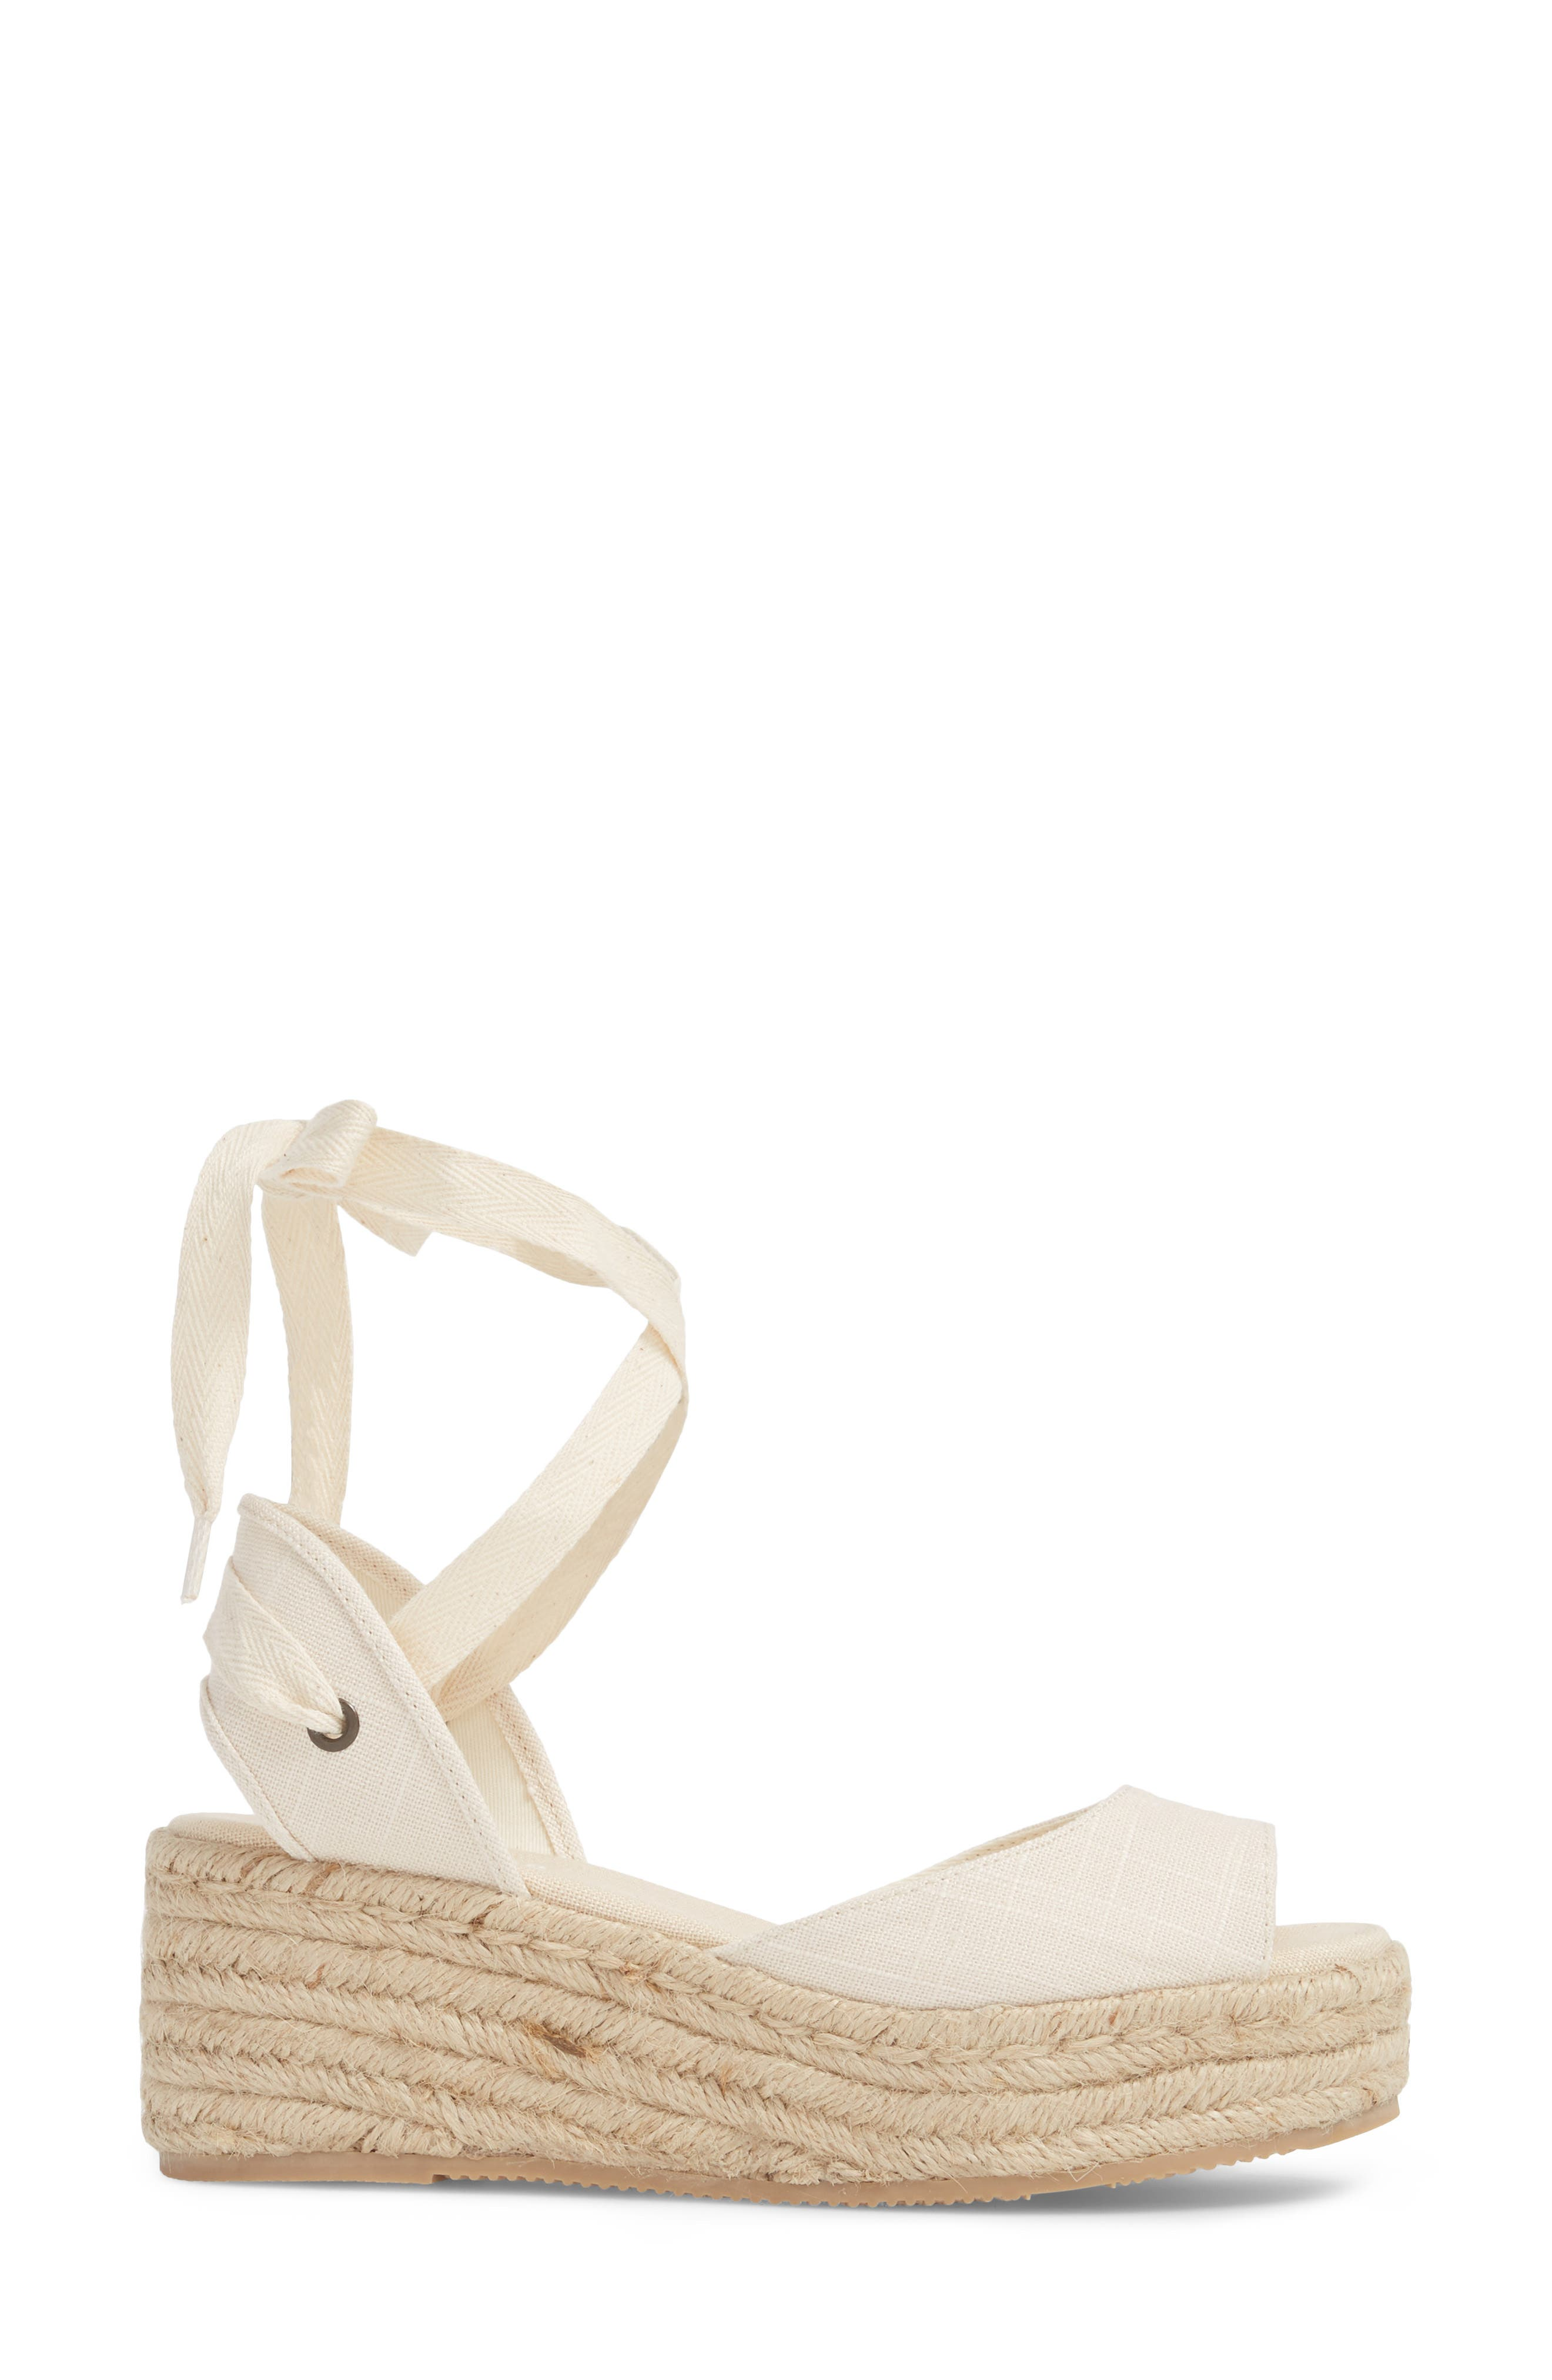 Espadrille Platform Sandal,                             Alternate thumbnail 3, color,                             BLUSH FABRIC